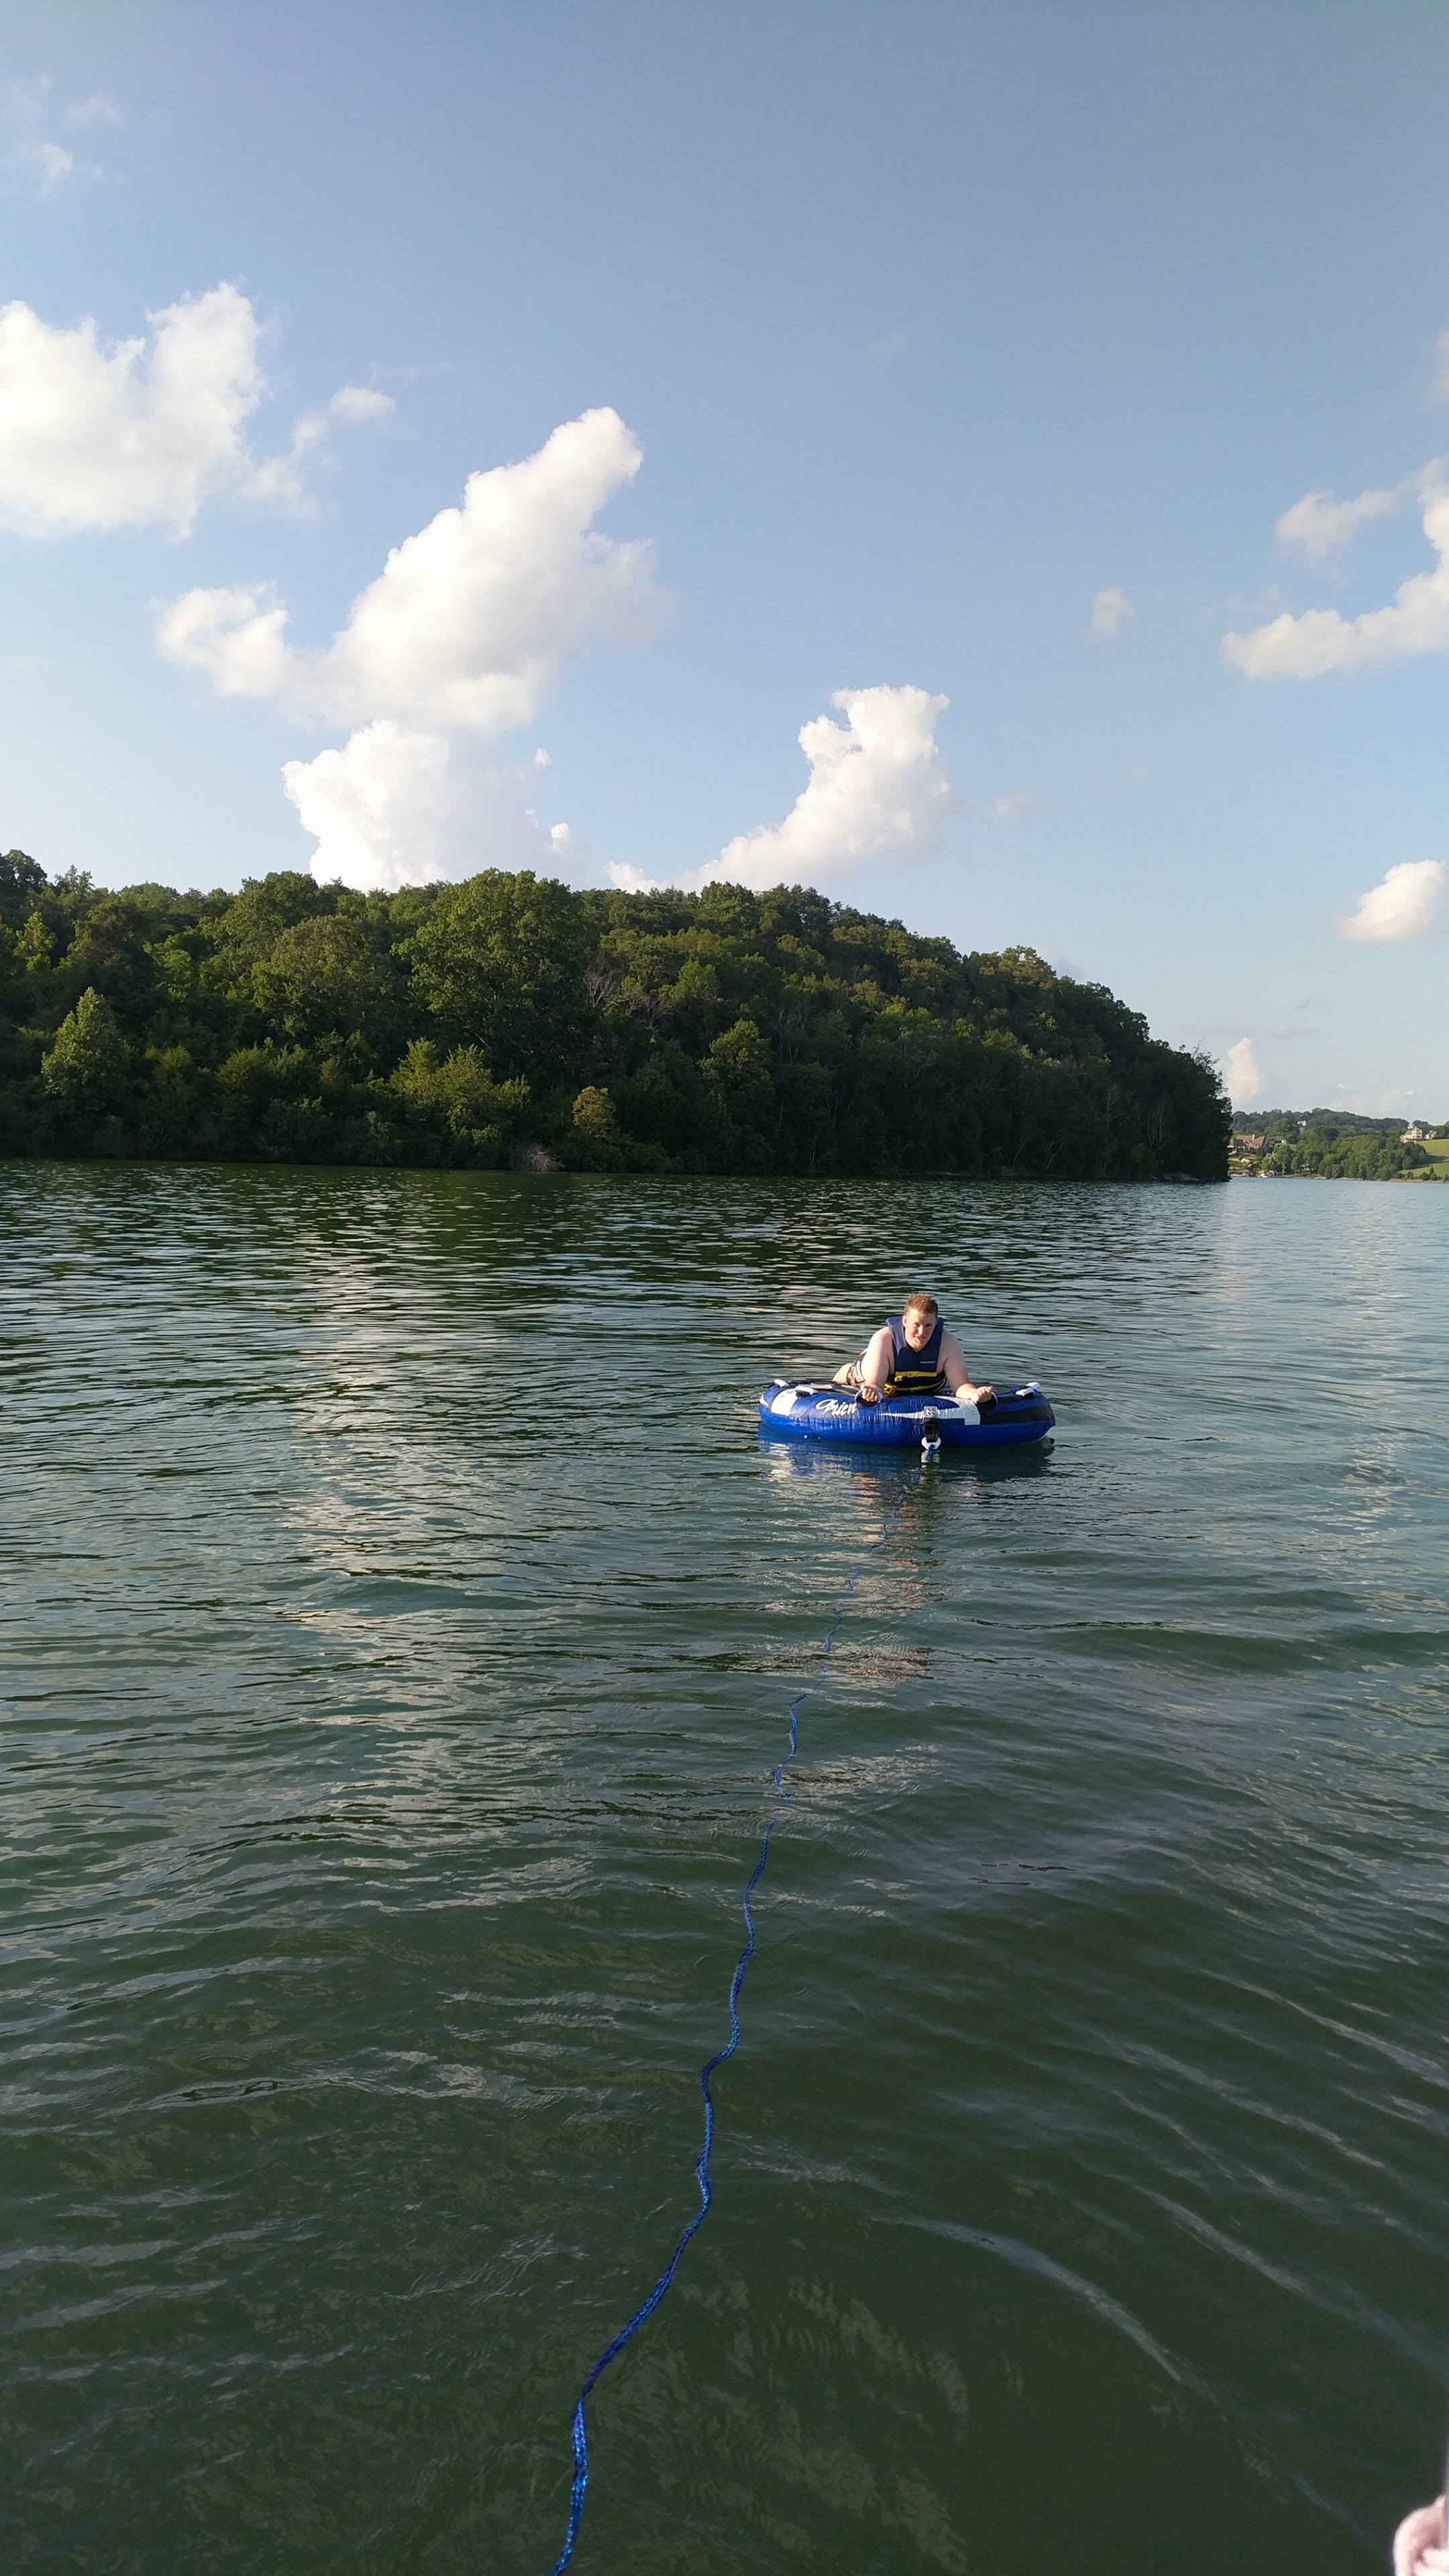 The Grand Seeley Adventure, family vacation, lake day, tubing, boating, water